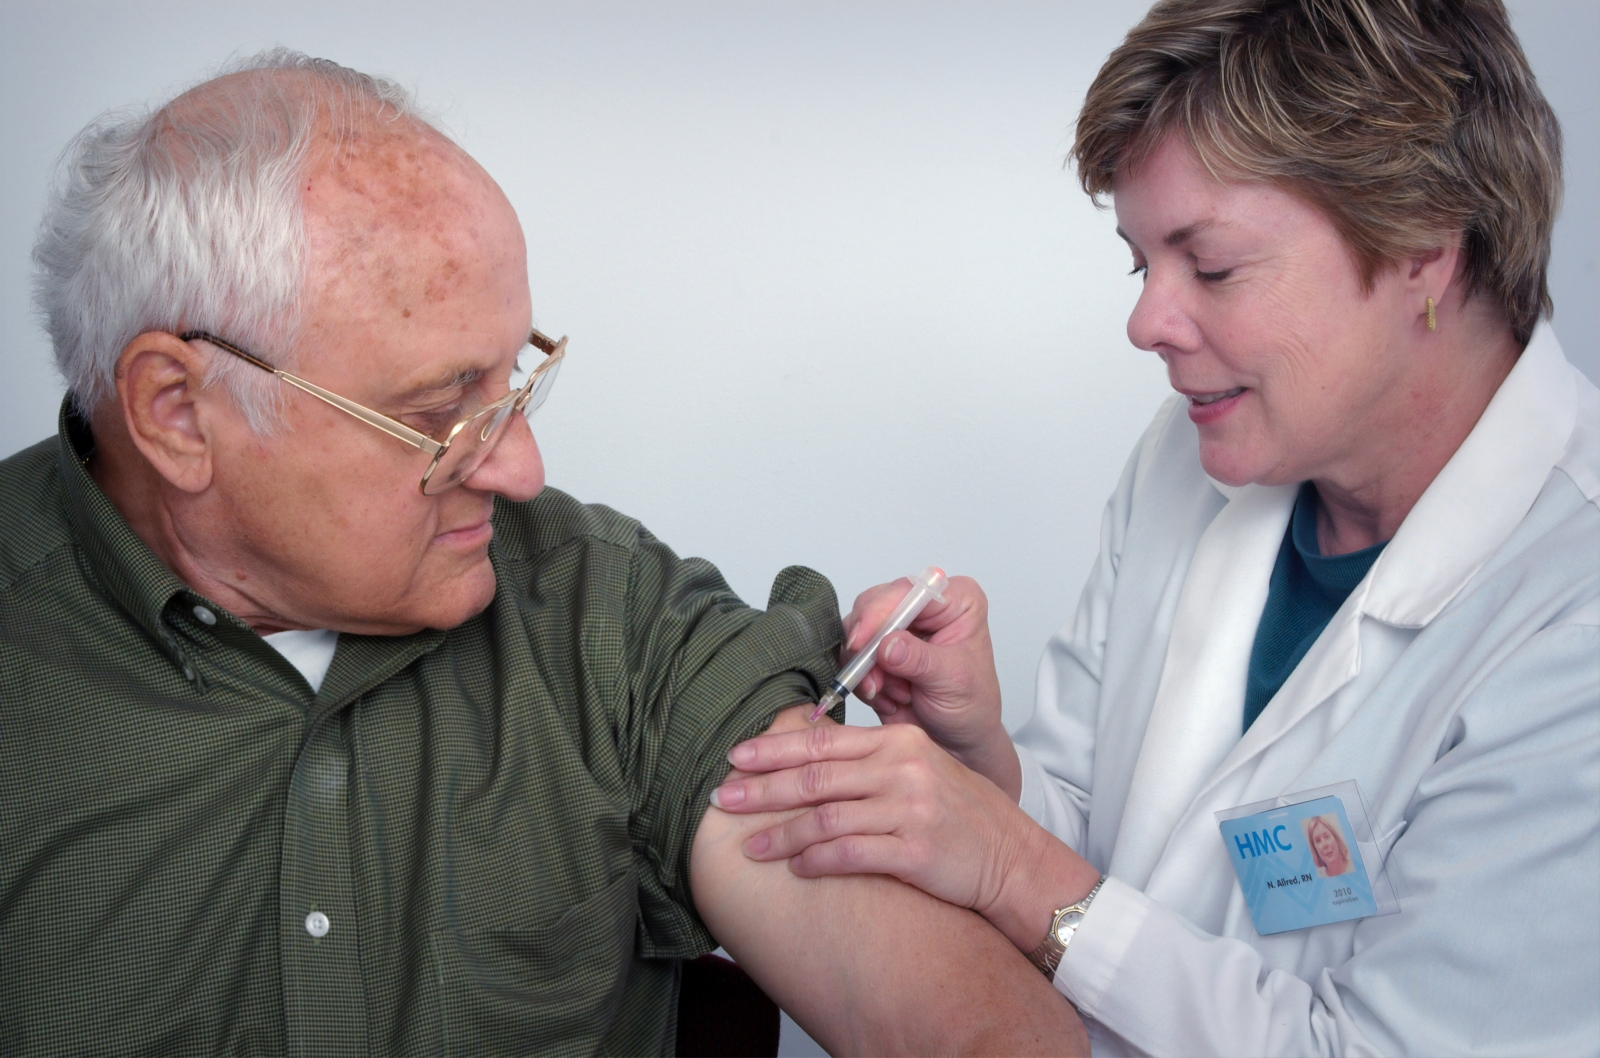 NY frontline healthcare workers priority group for Covid-19 vaccination